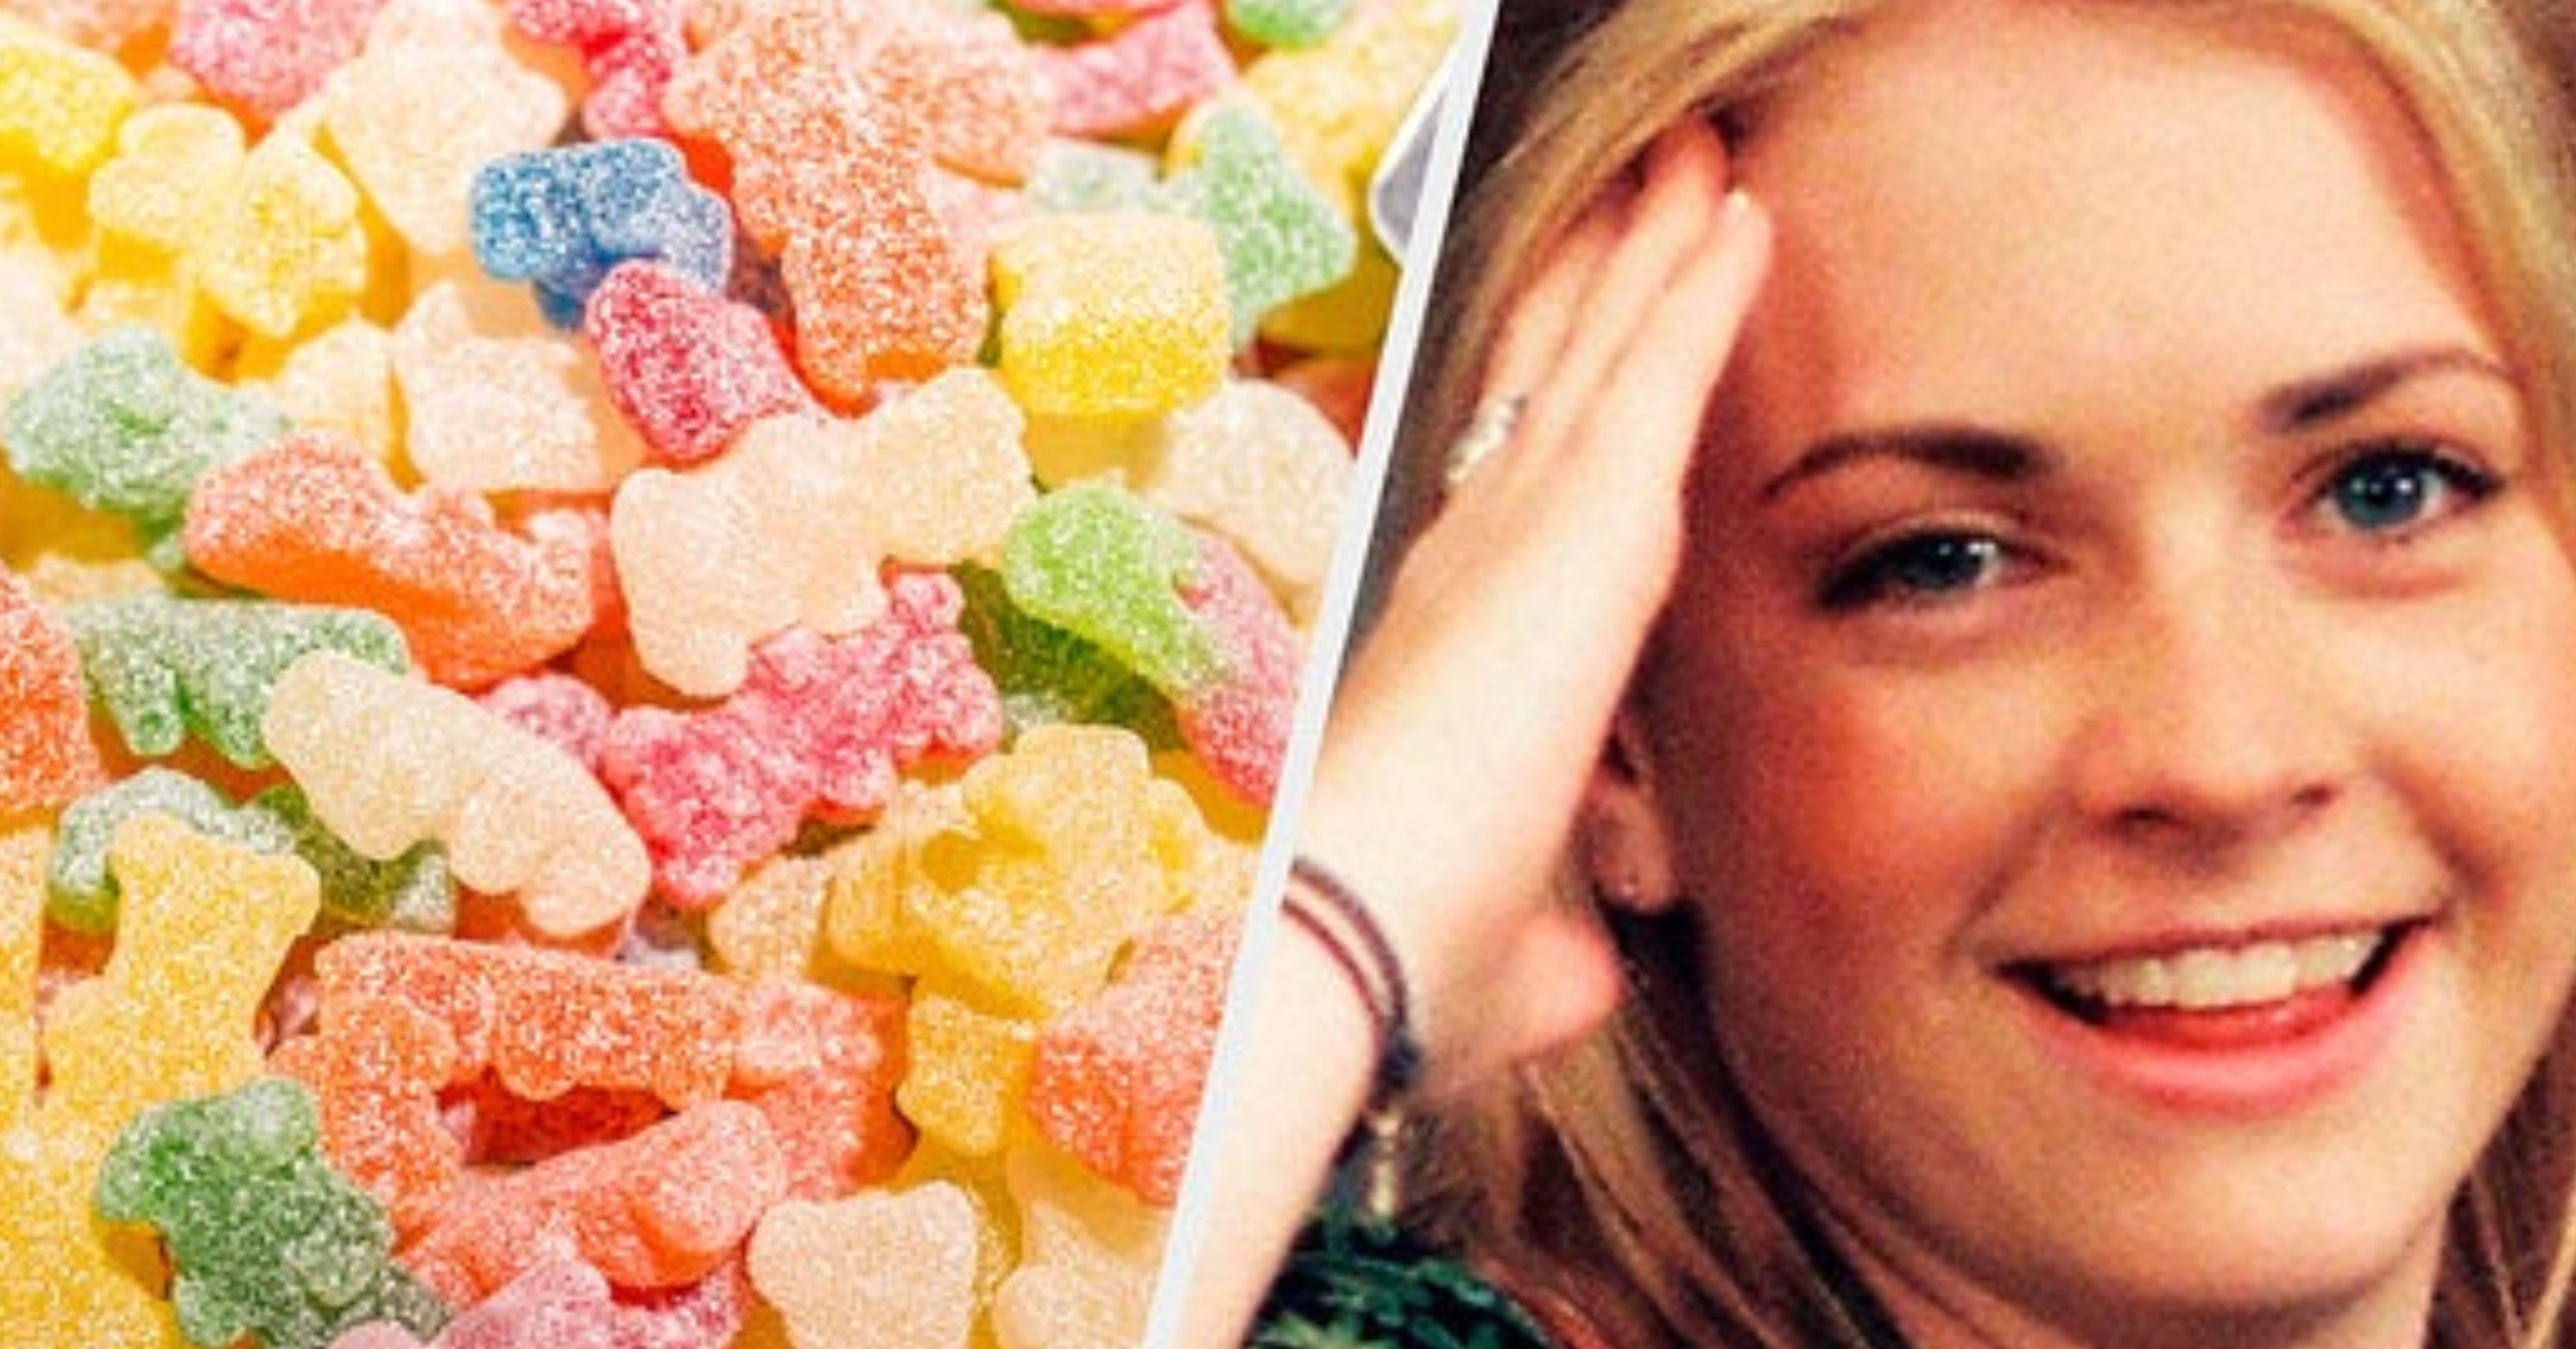 Tell Us Your Candy Preferences And We'll Tell You Your Soulmate's Name